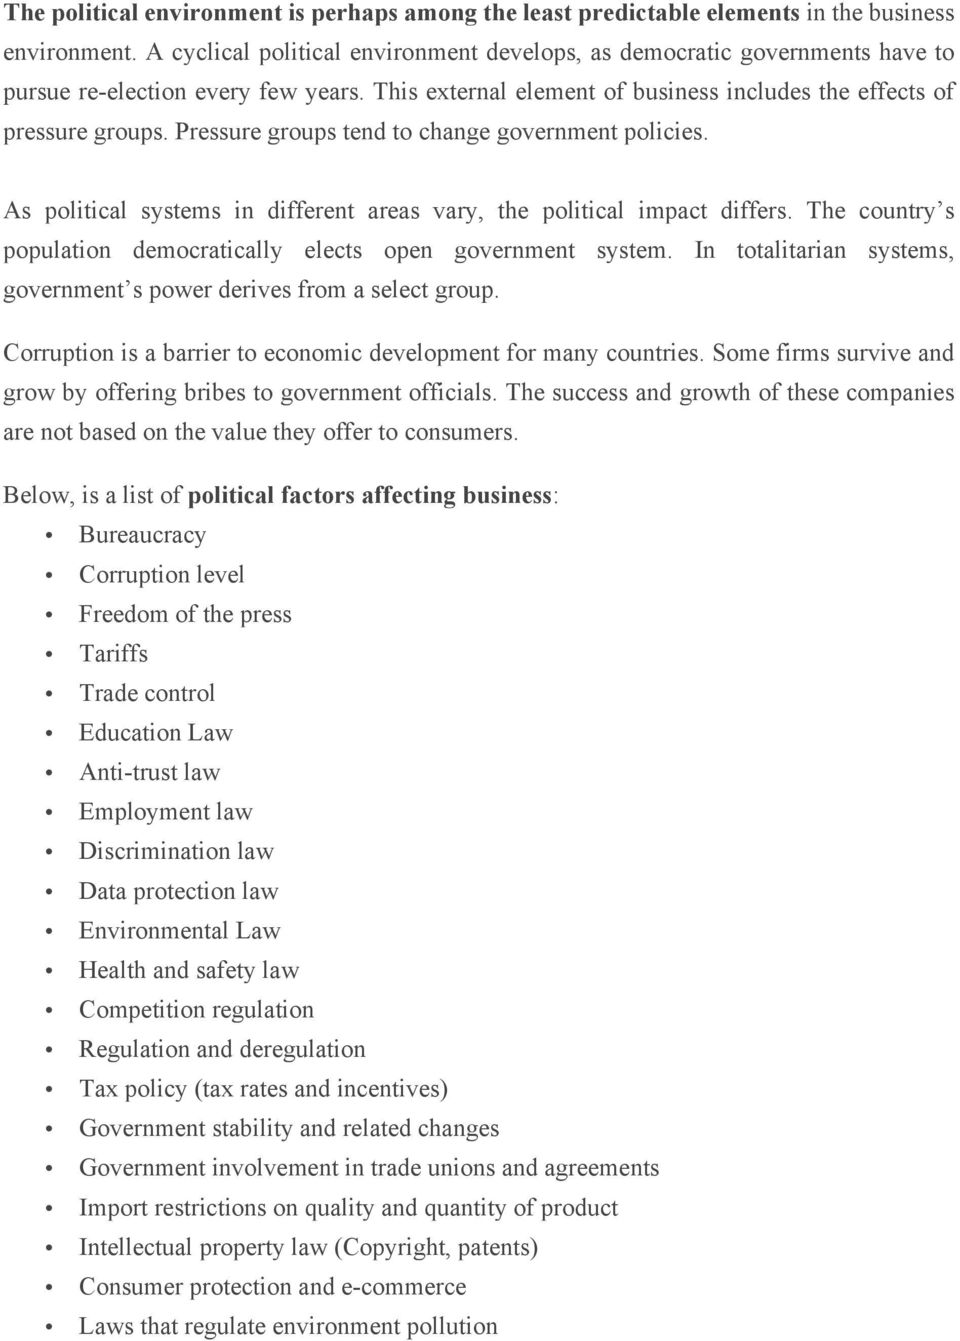 impact of political environment on business